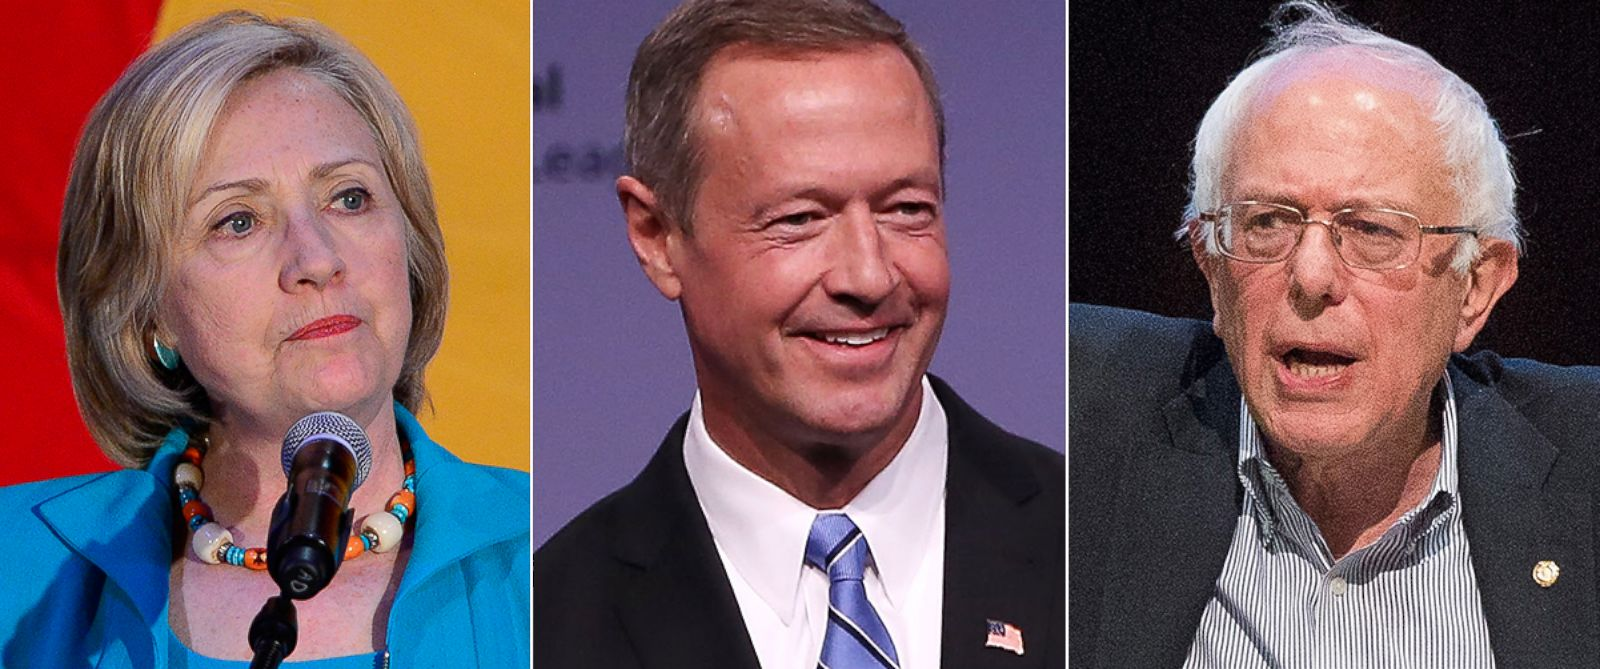 PHOTO: From left, Hillary Clinton, Martin OMalley and Bernie Sanders are pictured.